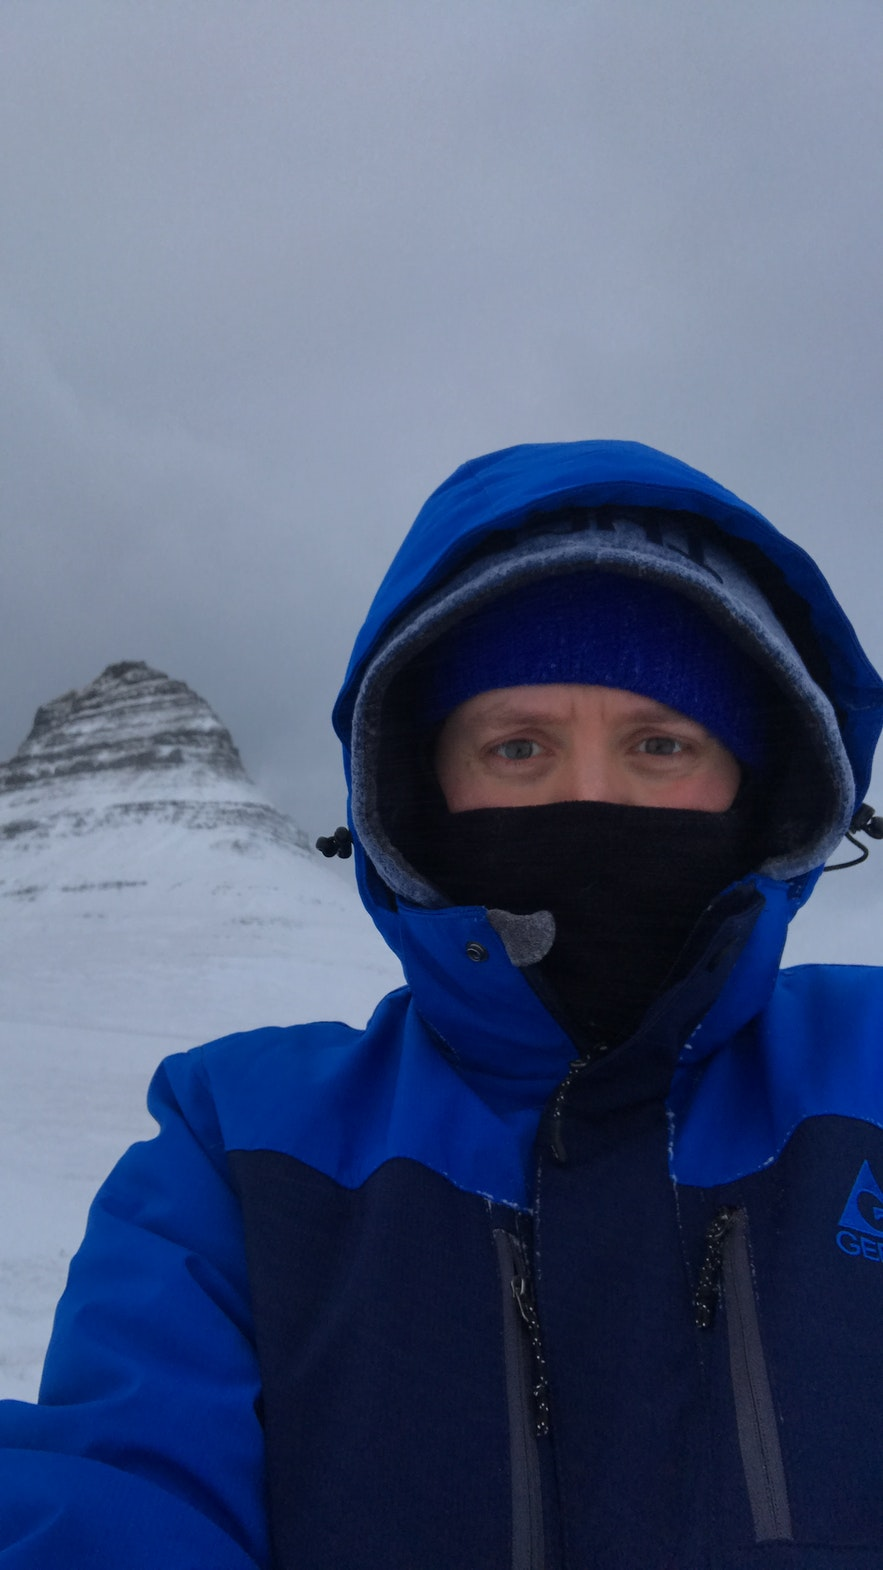 I am wearing 4 layers on my head alone. Kirkjufell in the background